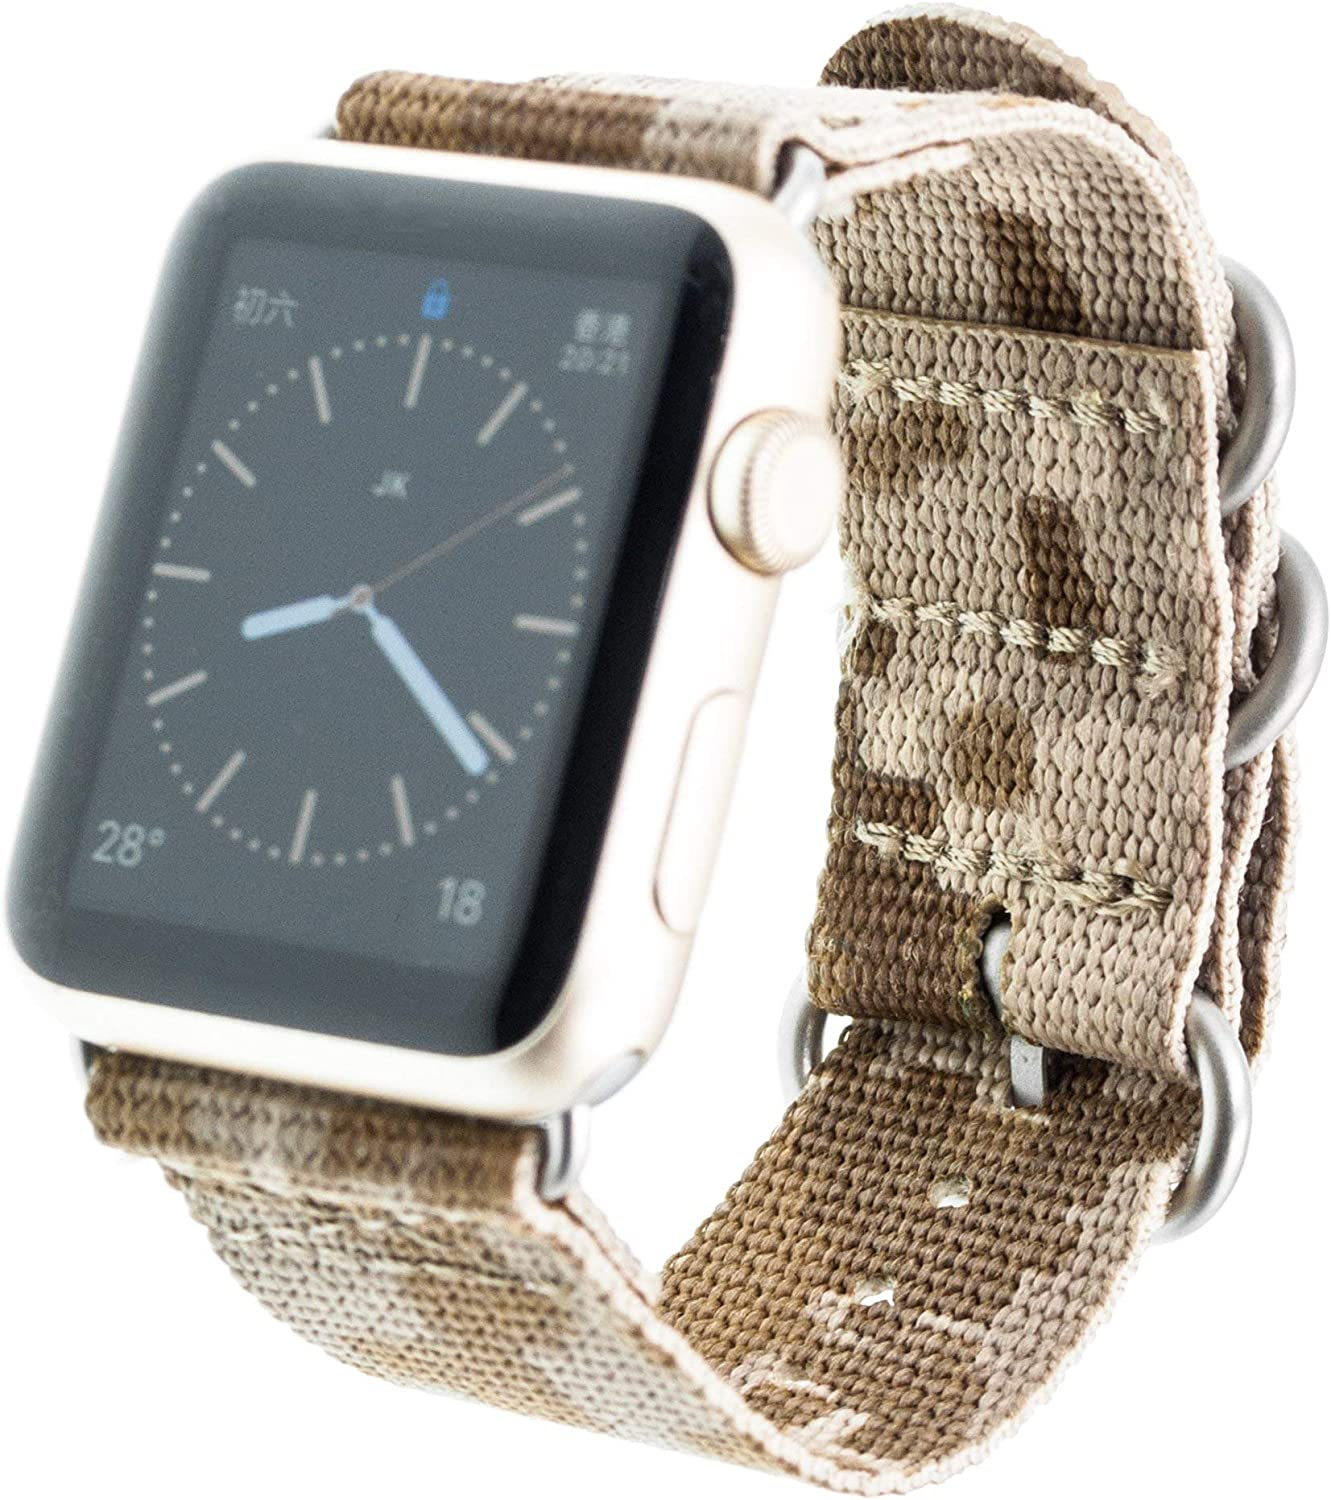 Digital Desert AOR1 Camouflage Nylon Strap Silver Buckle For Apple Watch Band 42mm NATO iWatch Series 3 2 1